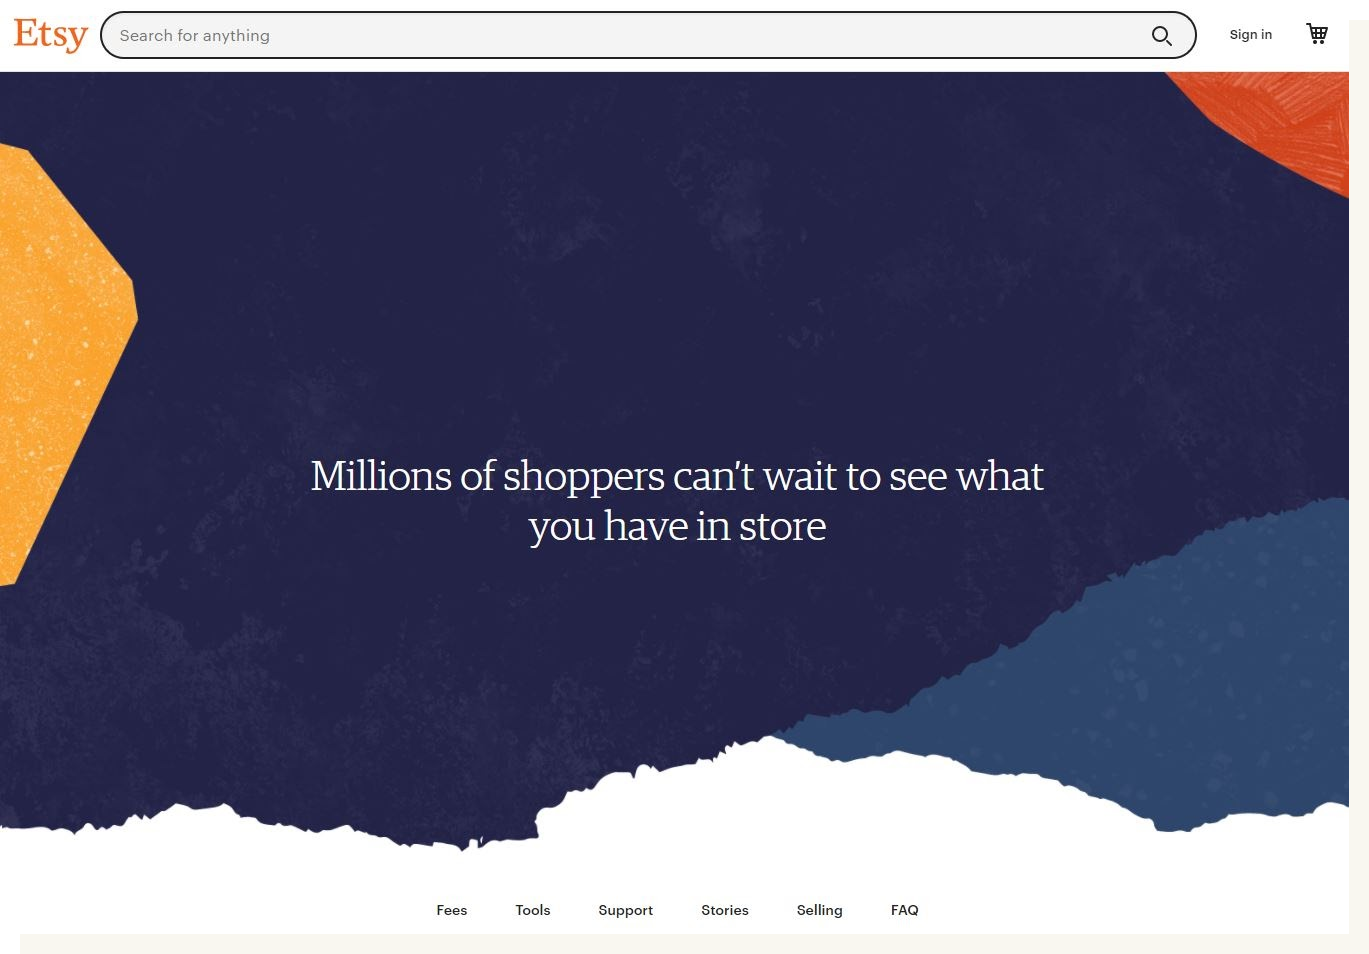 """An image of the Etsy seller homepage. The main text reads: """"Millions of shoppers can't wait to see what you have in store."""" The text is surrounded by blue, red, and yellow artistic ink splotches."""